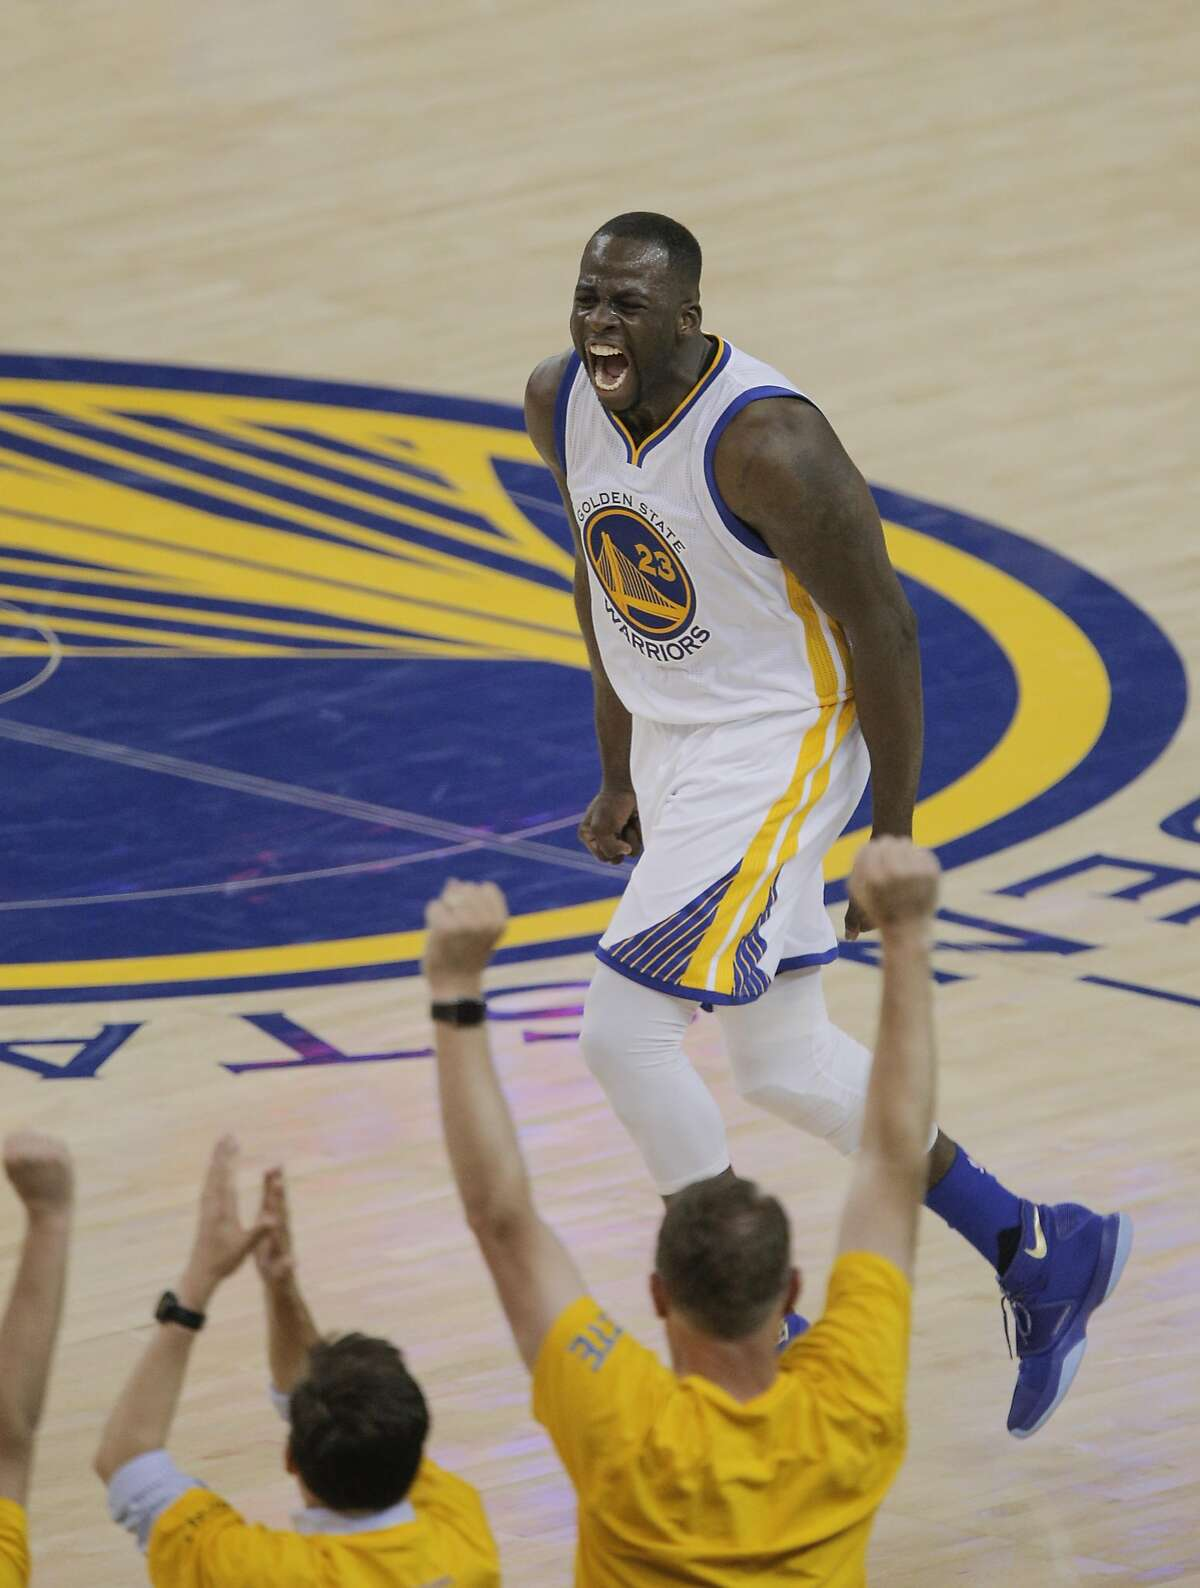 Golden State Warriors' Draymond Green reacts in the second quarter during Game 2 of the NBA Finals at Oracle Arena on Sunday, June 5, 2016 in Oakland, Calif.